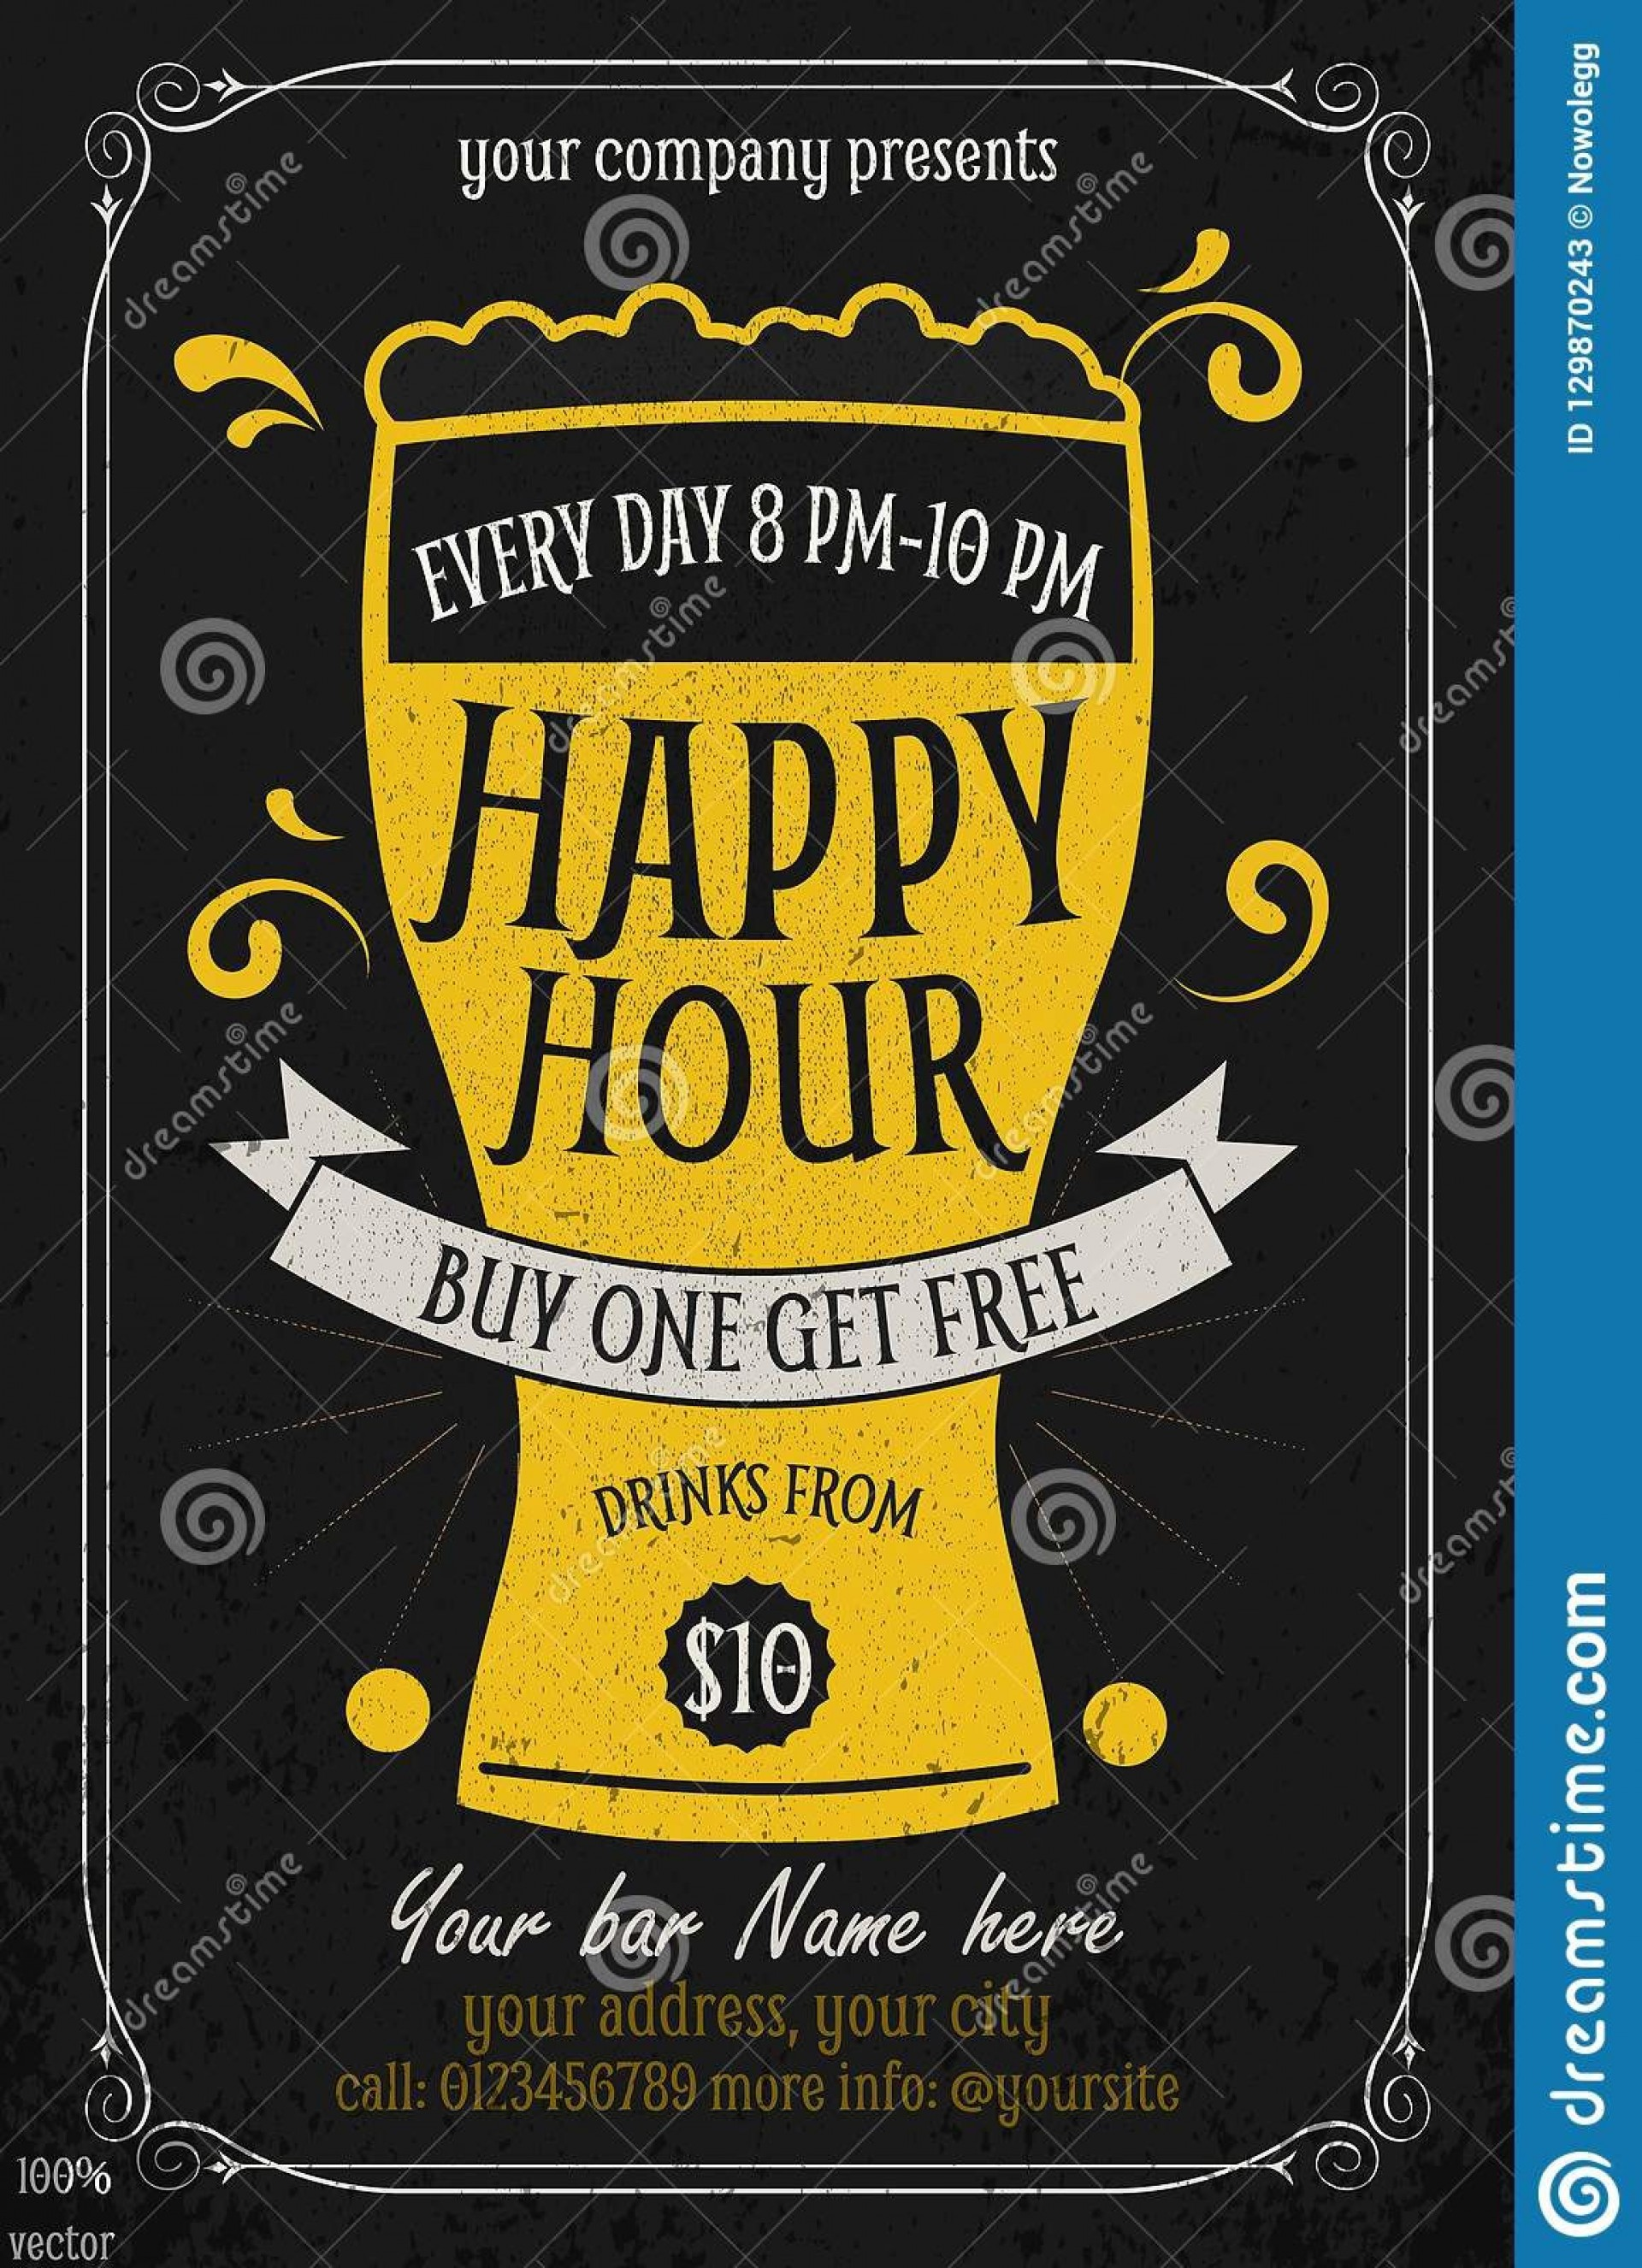 006 Unforgettable Happy Hour Invitation Template Idea  Templates Free Word Farewell1920